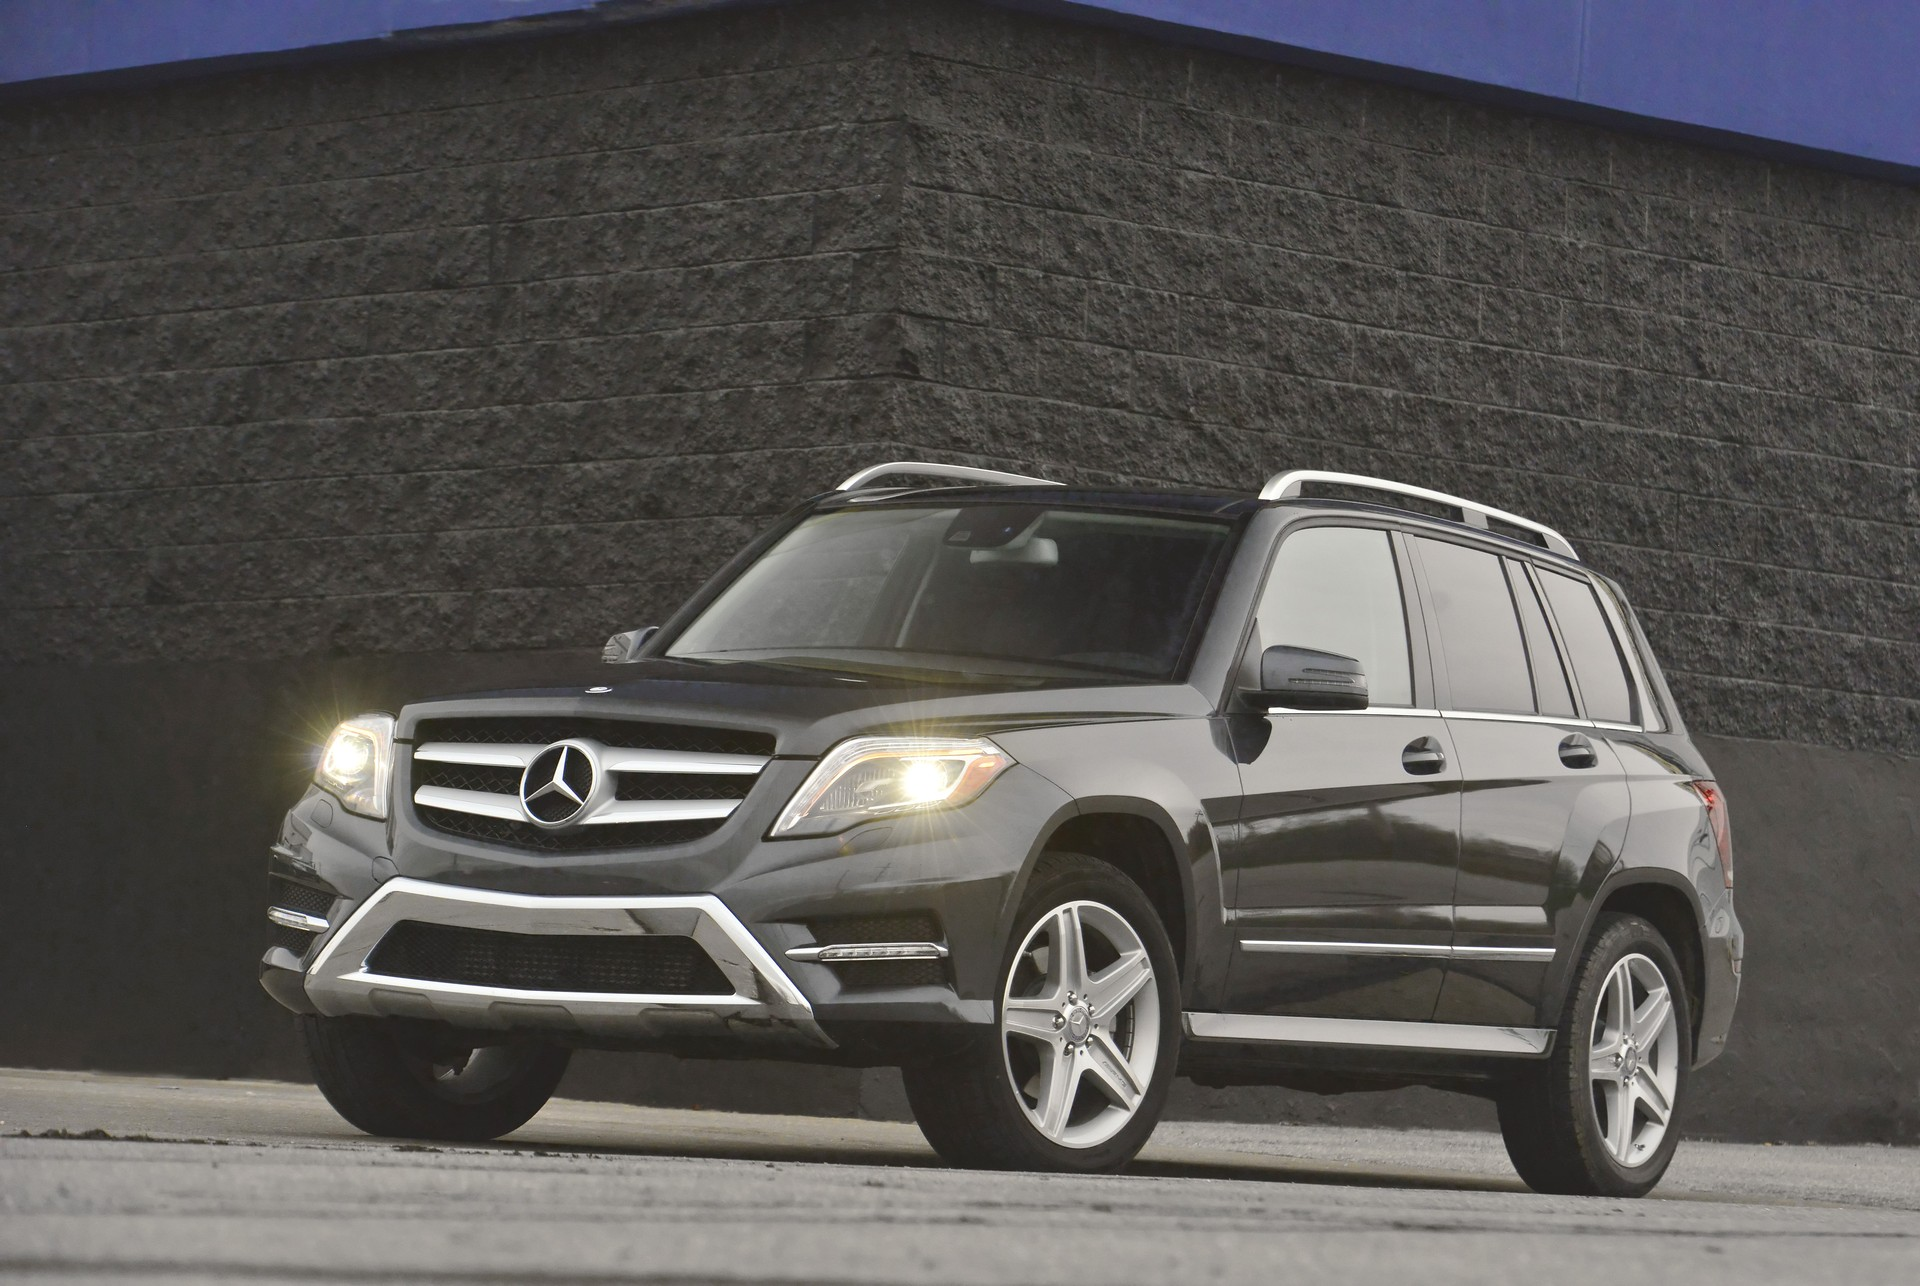 2014 mercedes benz glk class review ratings specs for Mercedes benz glk price